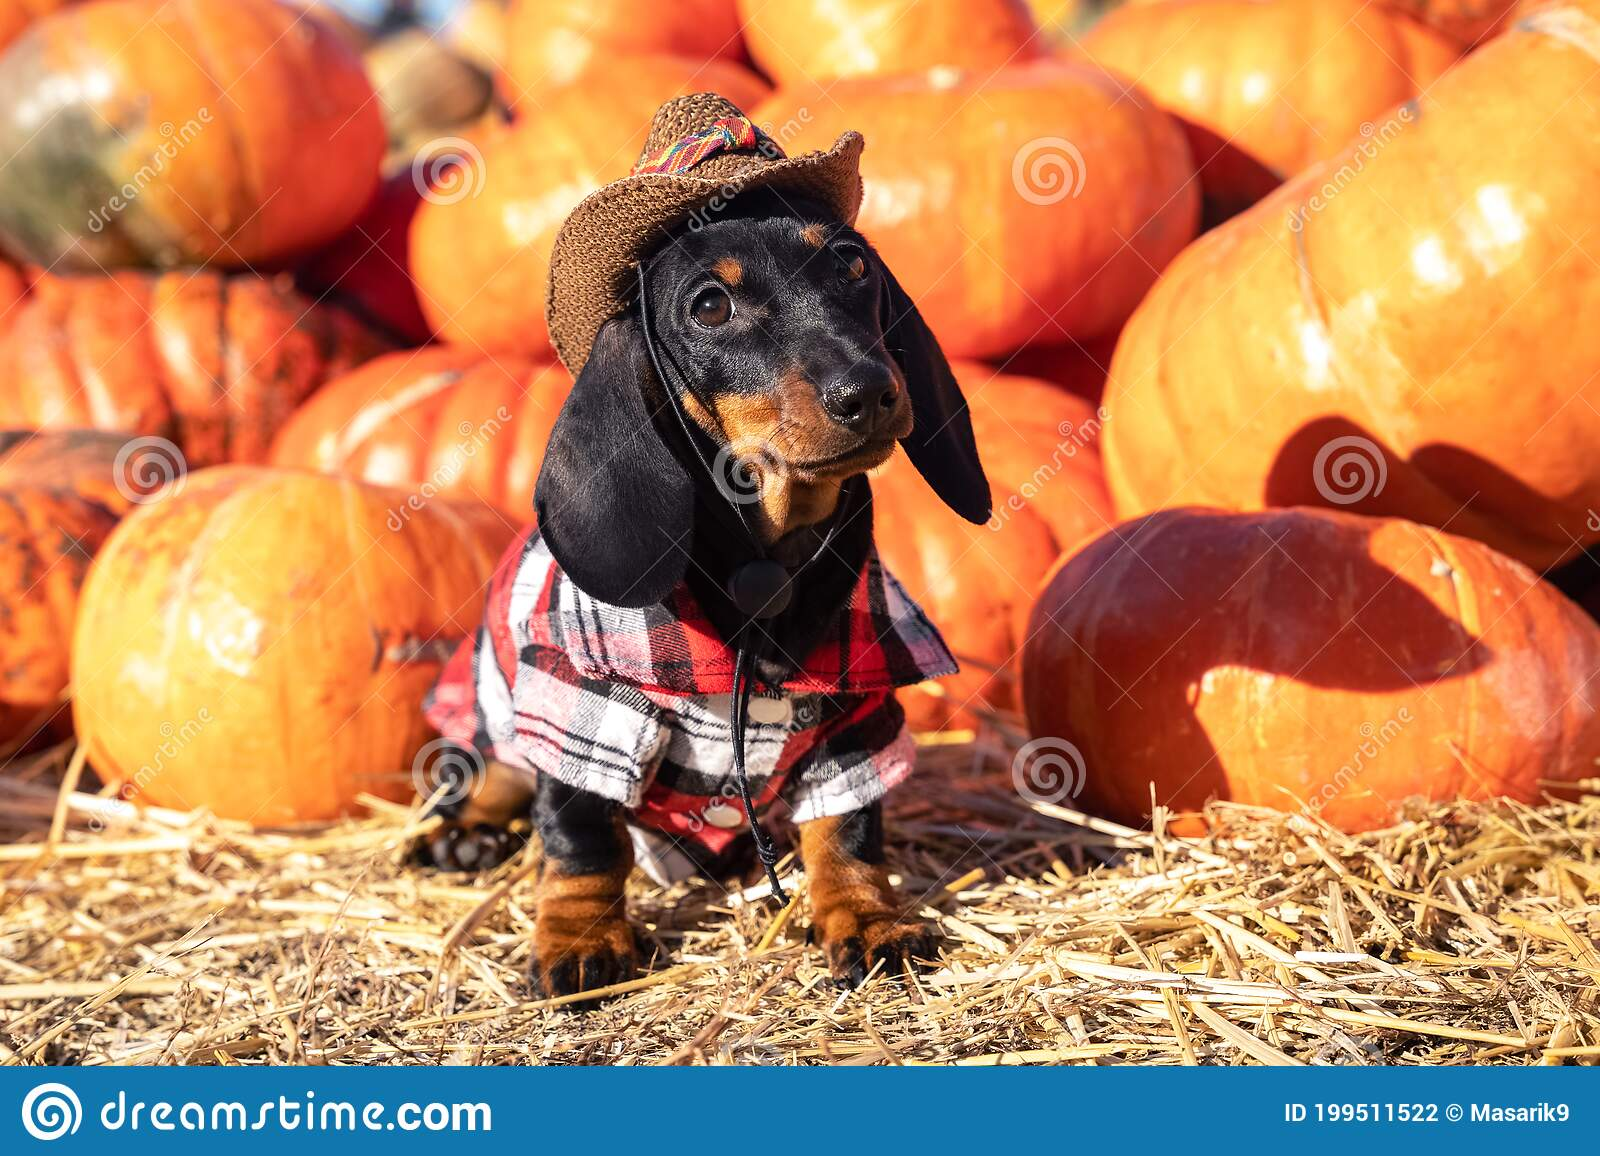 Funny Dachshund Puppy Dressed In A Village Check Shirt And A Cowboy Hat Standing Nearby A Heap A Pumpkin Harvest At Stock Photo Image Of Doggy Agriculture 199511522